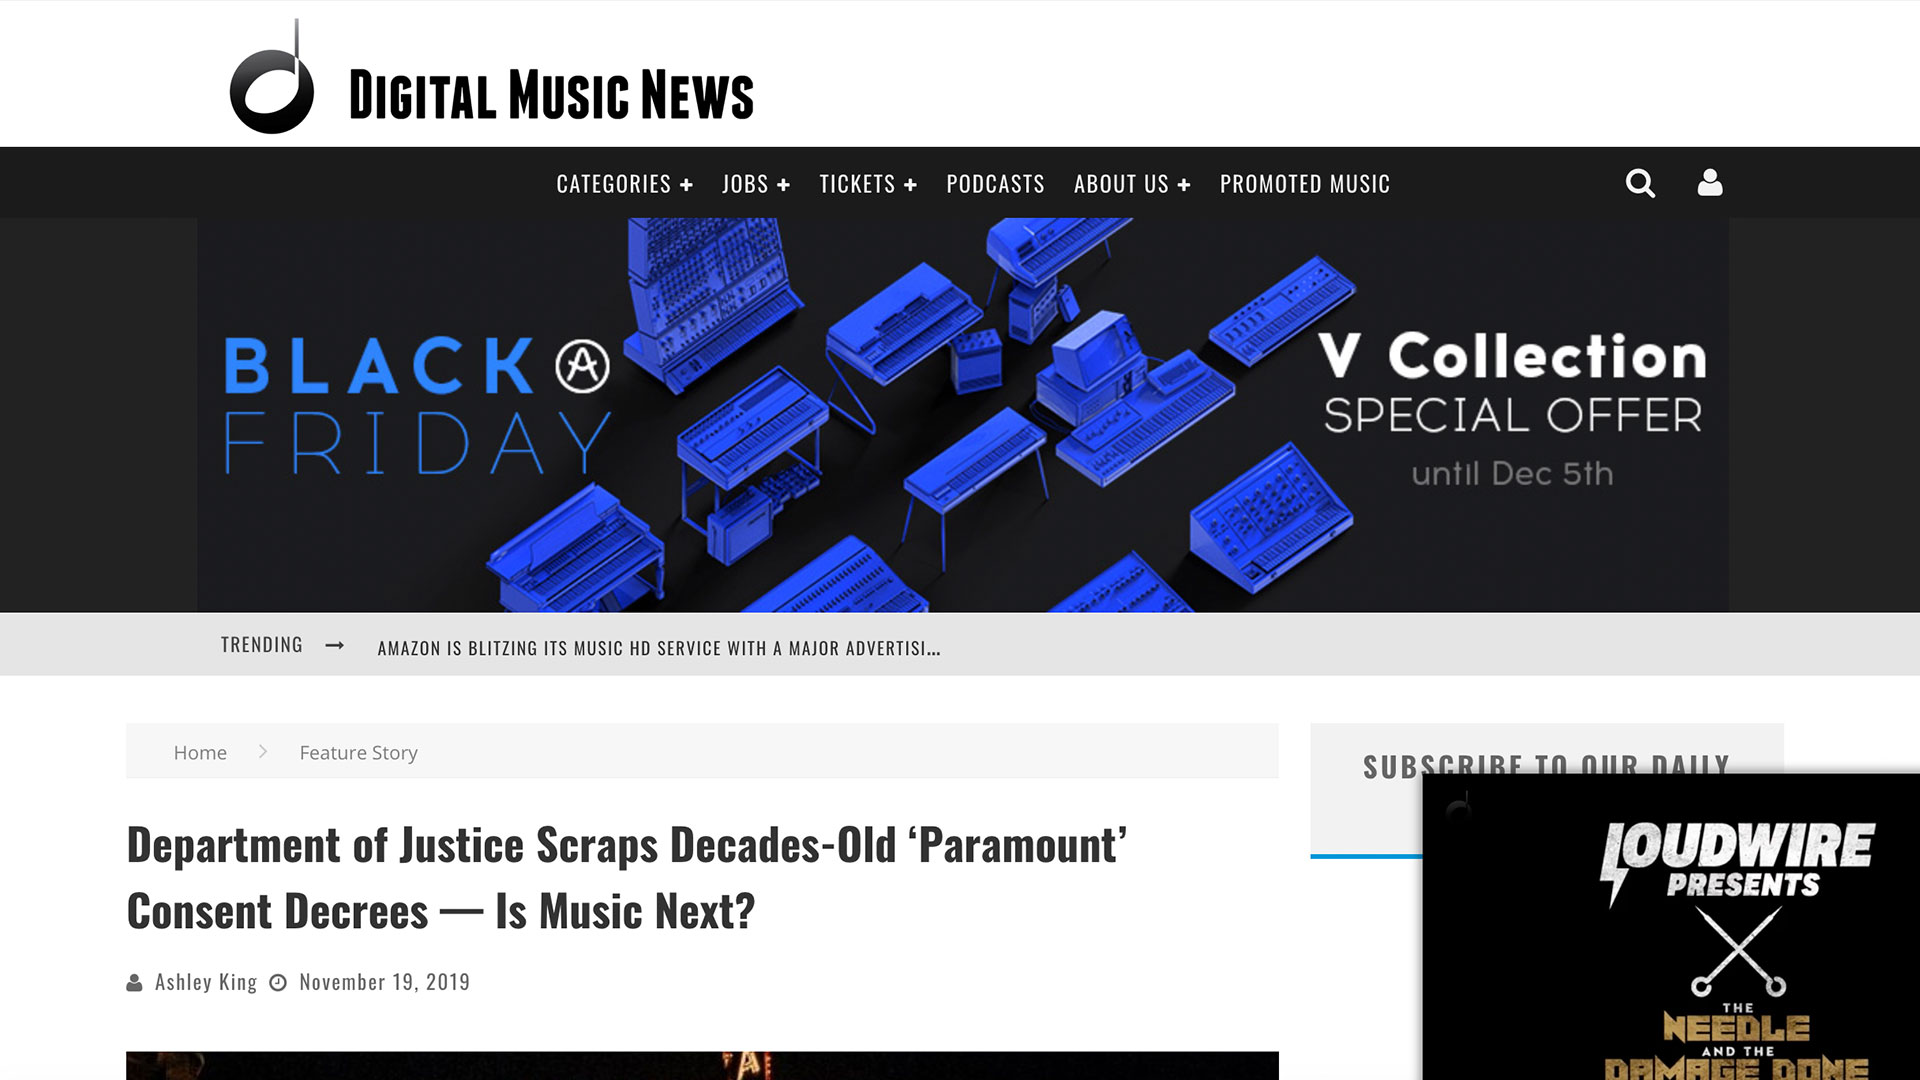 Fairness Rocks News Department of Justice Scraps Decades-Old 'Paramount' Consent Decrees — Is Music Next?